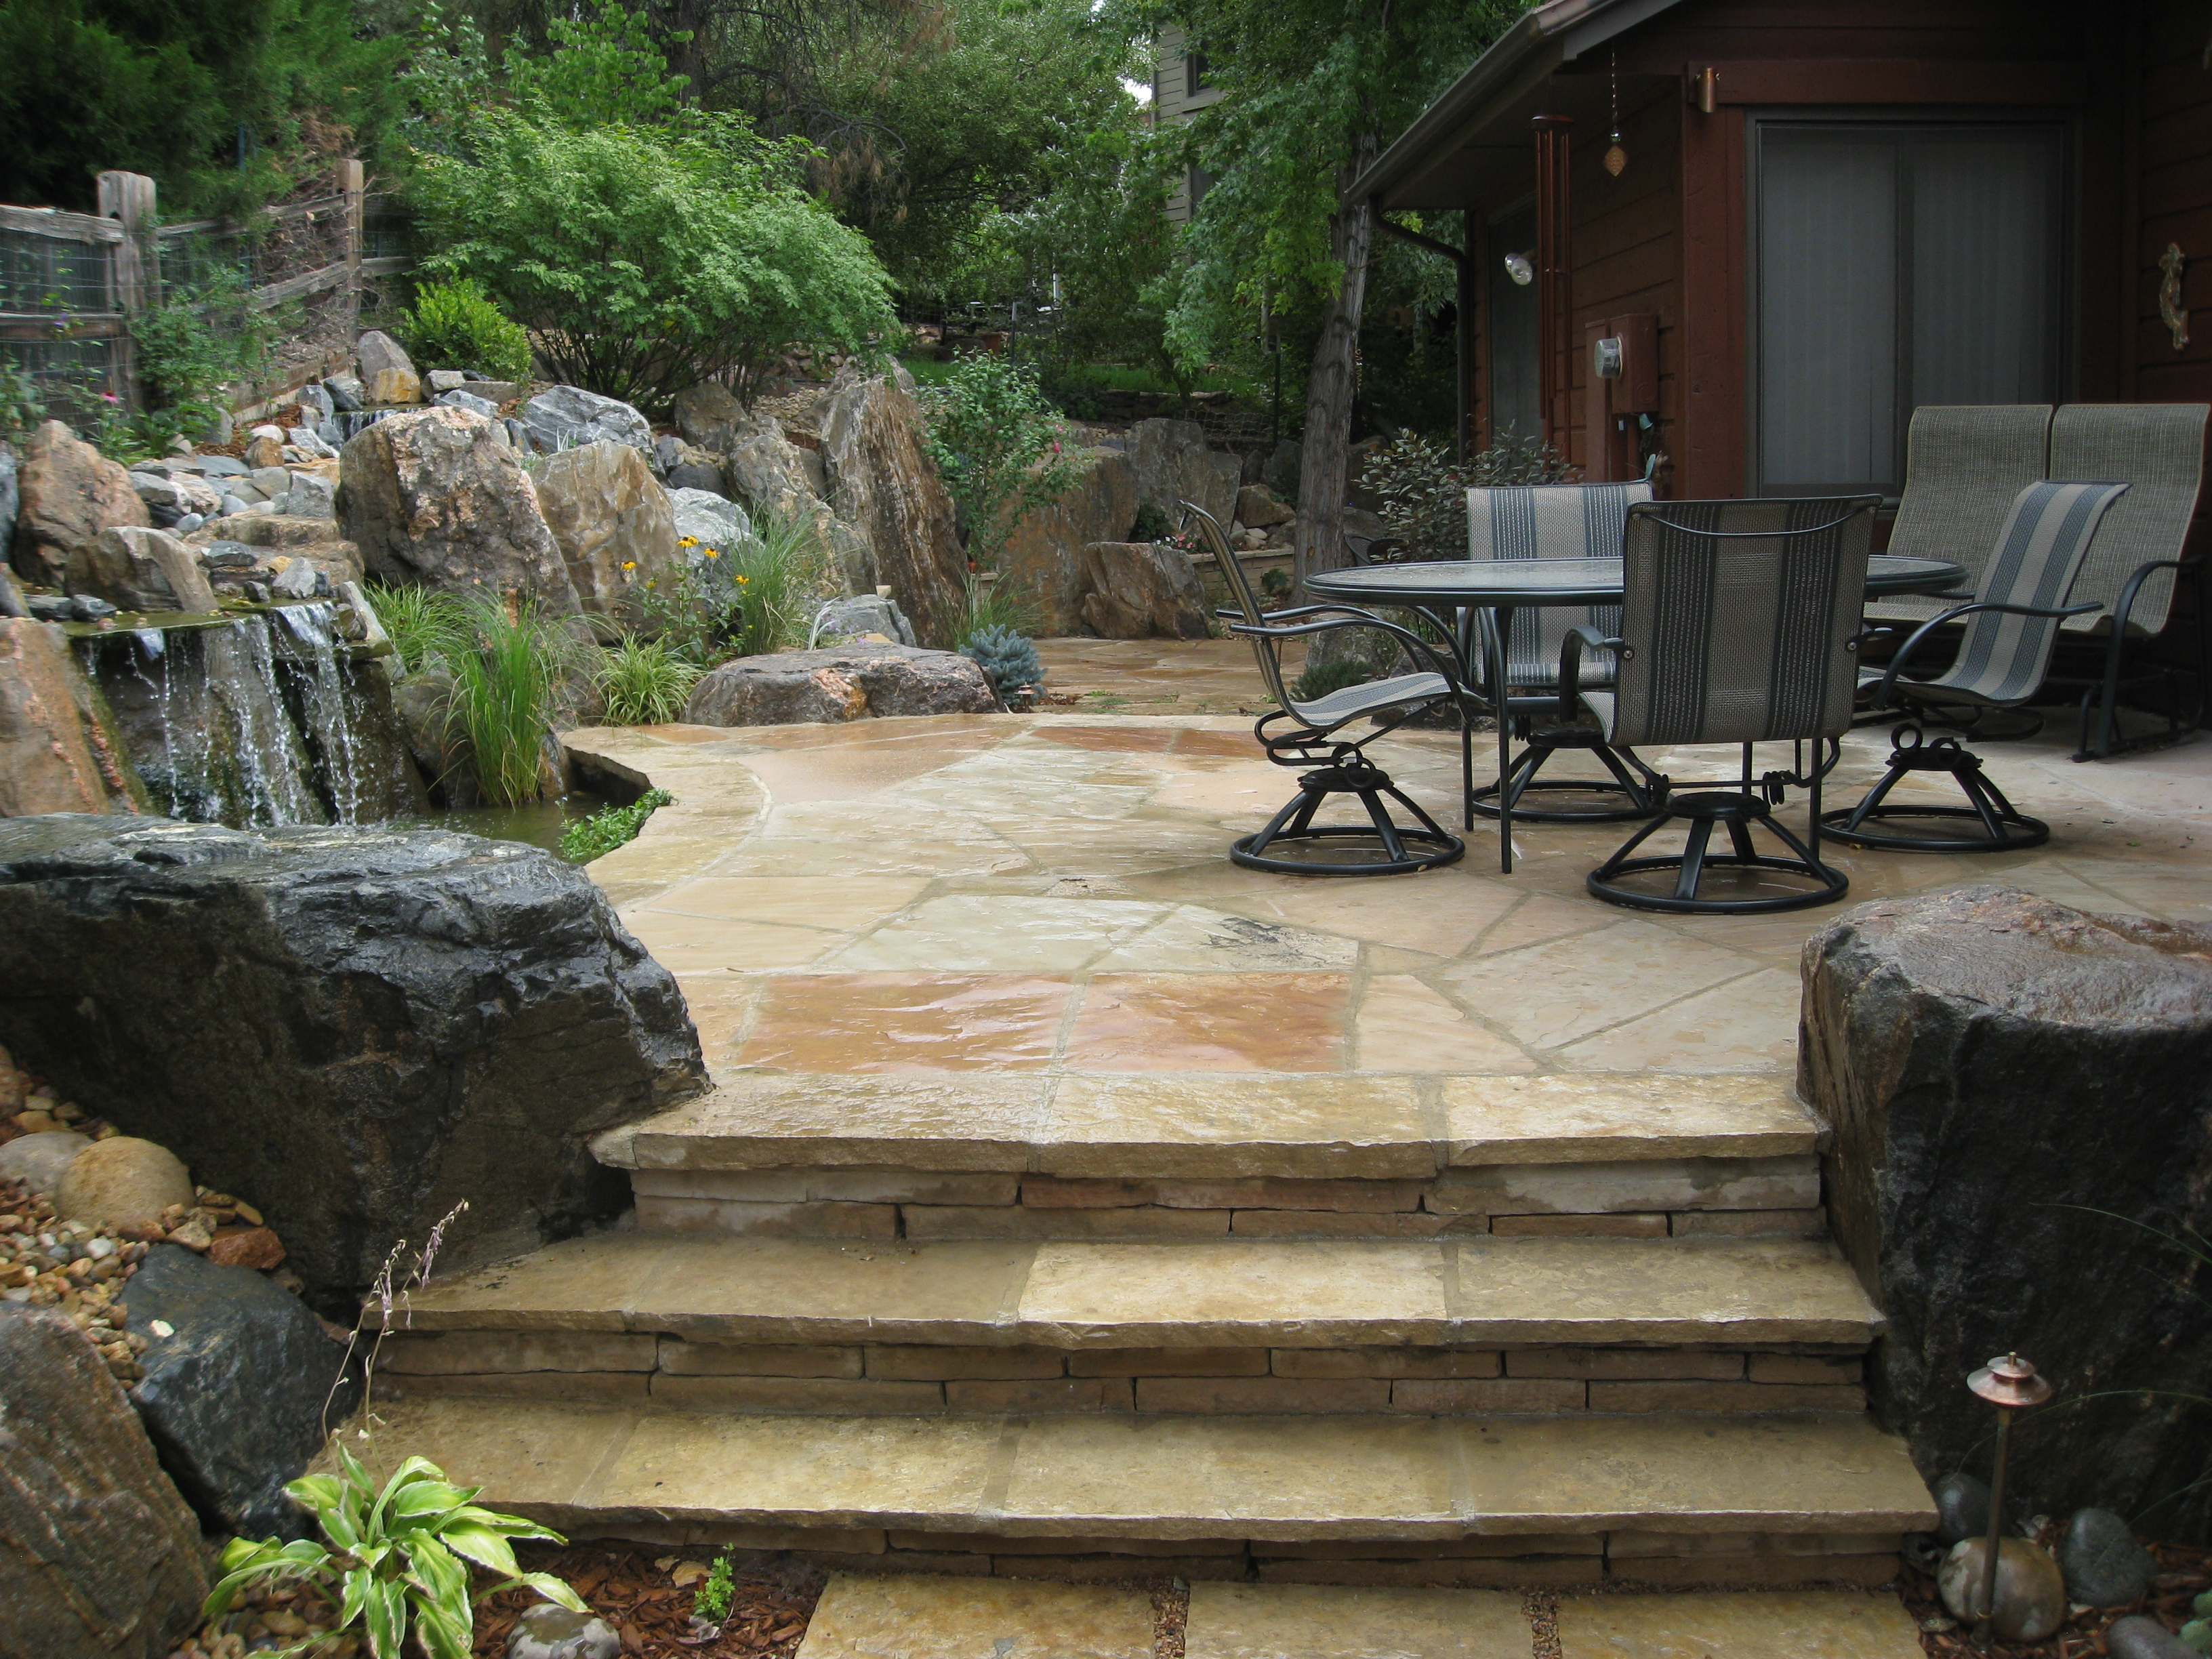 Flagstone Patio and Stairs with Boulders and Naturalistic Water